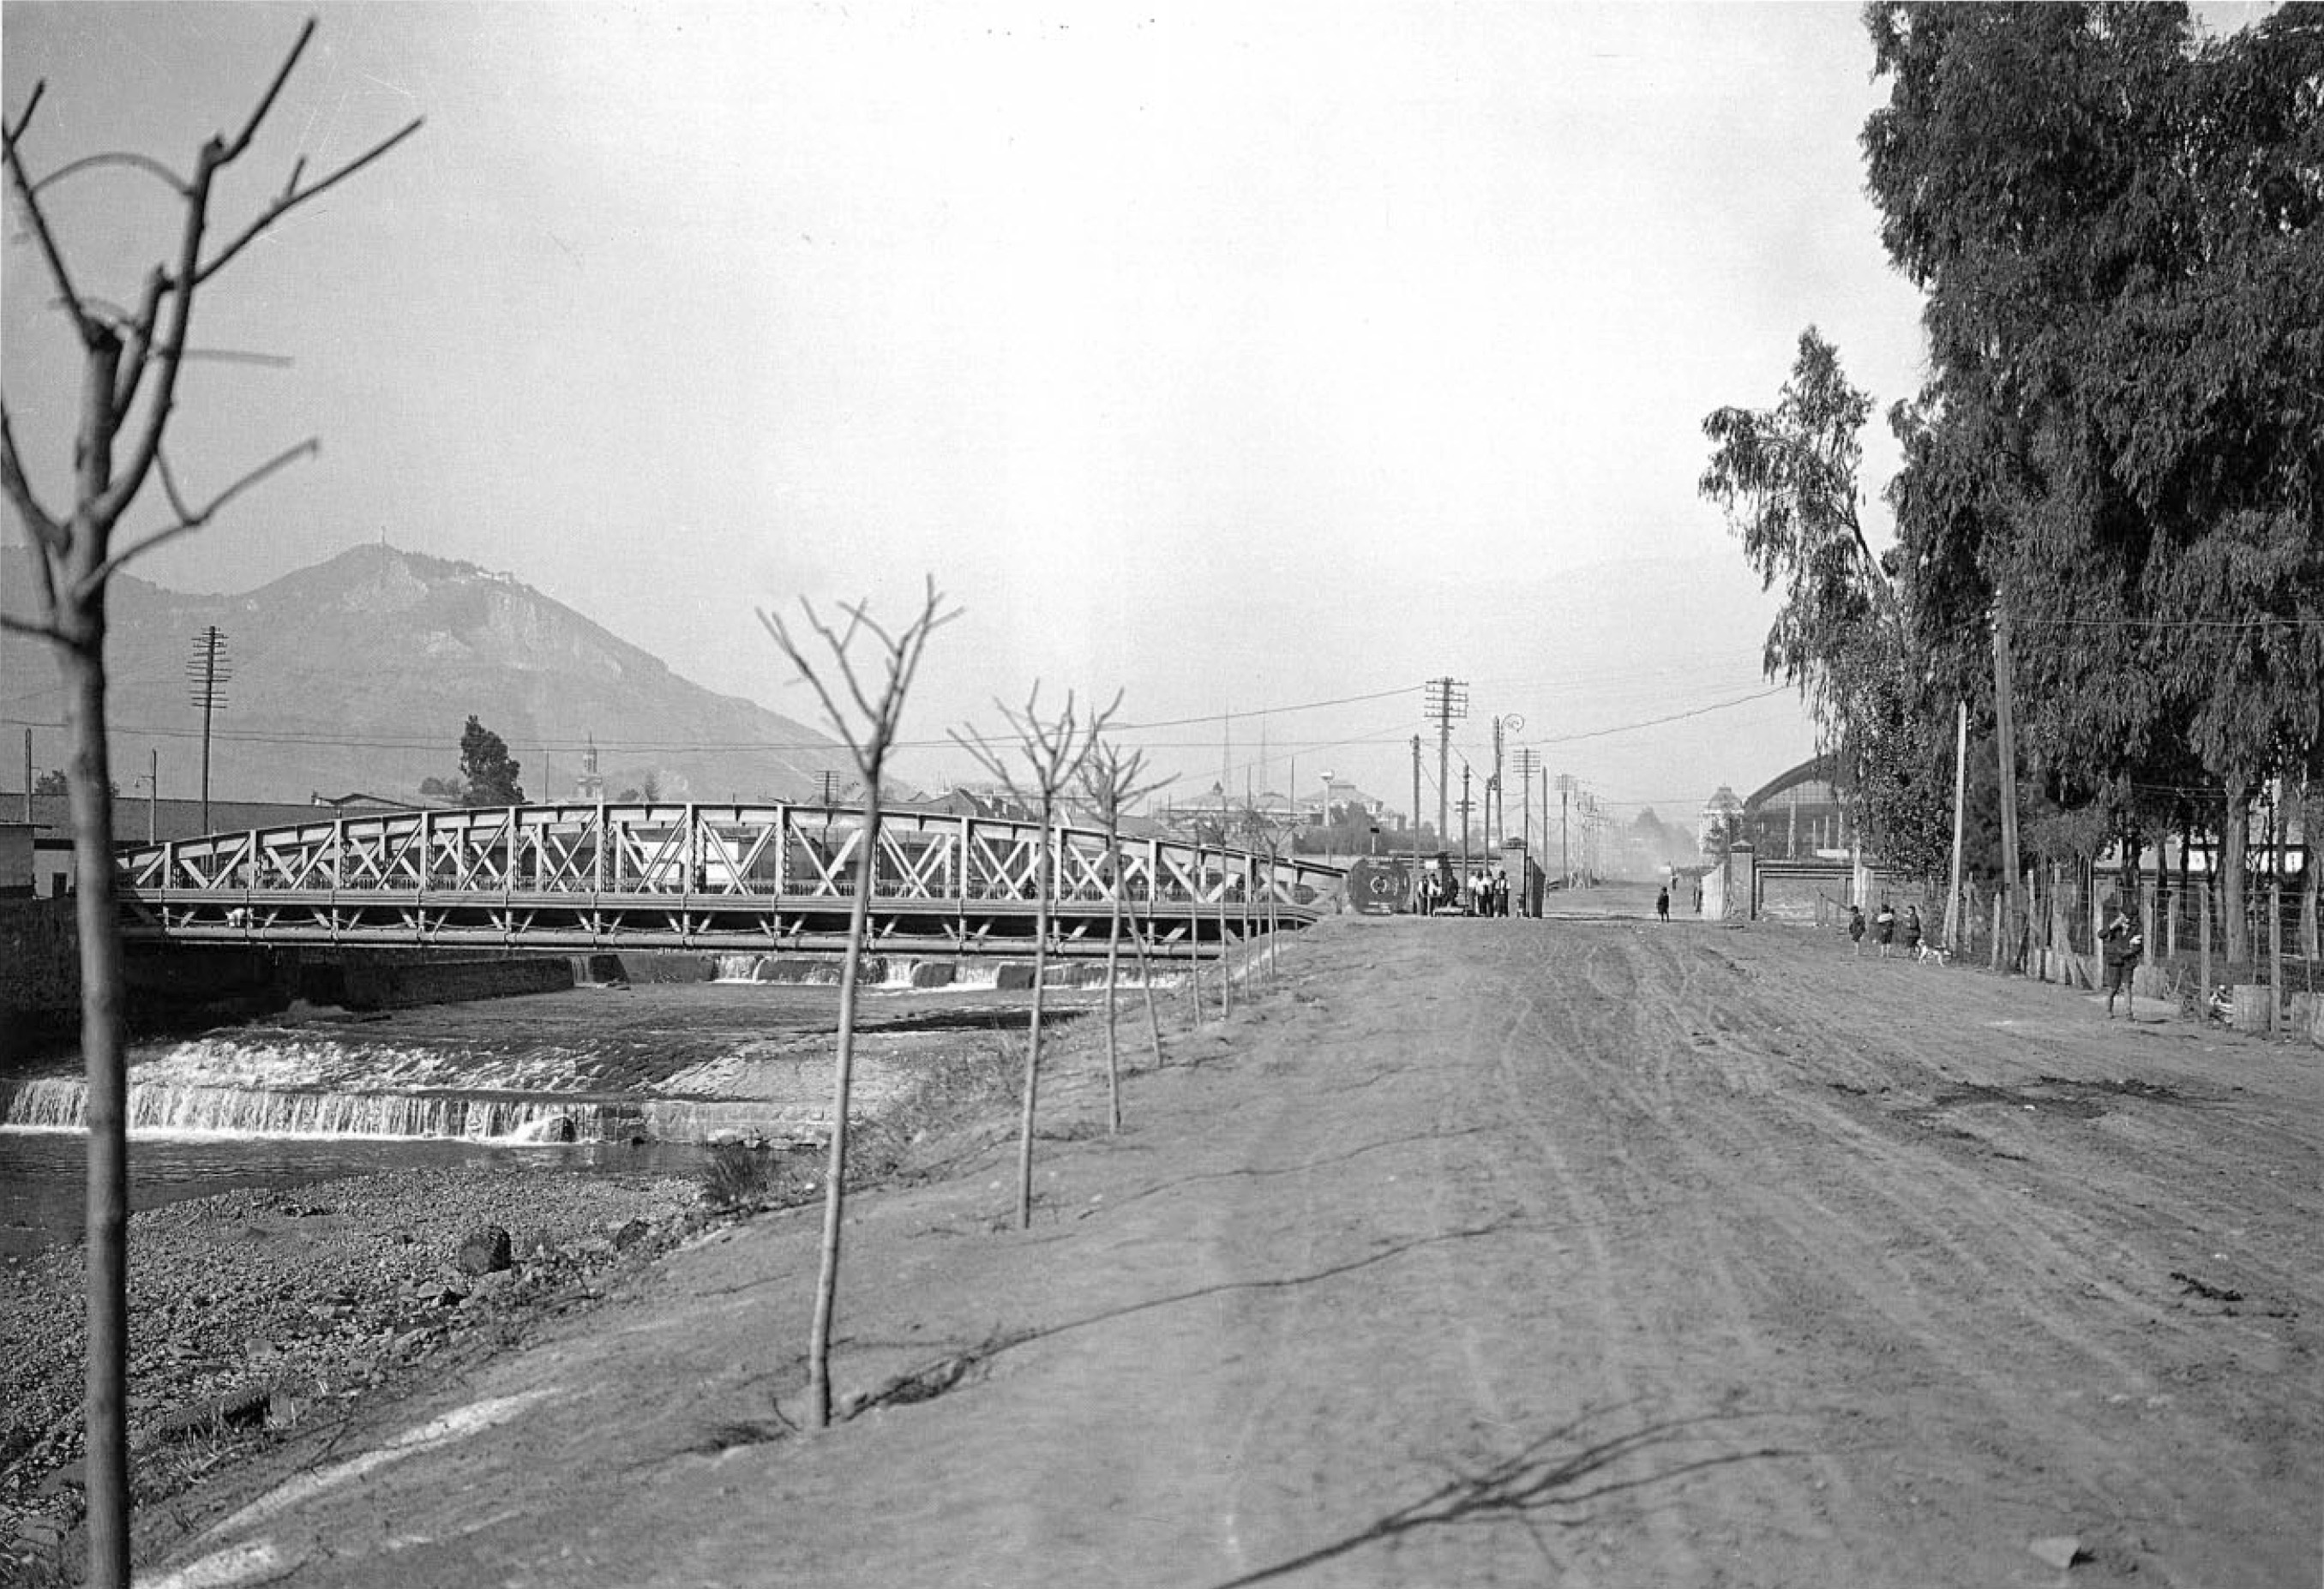 Enterreno - Fotos históricas de chile - fotos antiguas de Chile - Puente Manuel Rodríguez, 1928